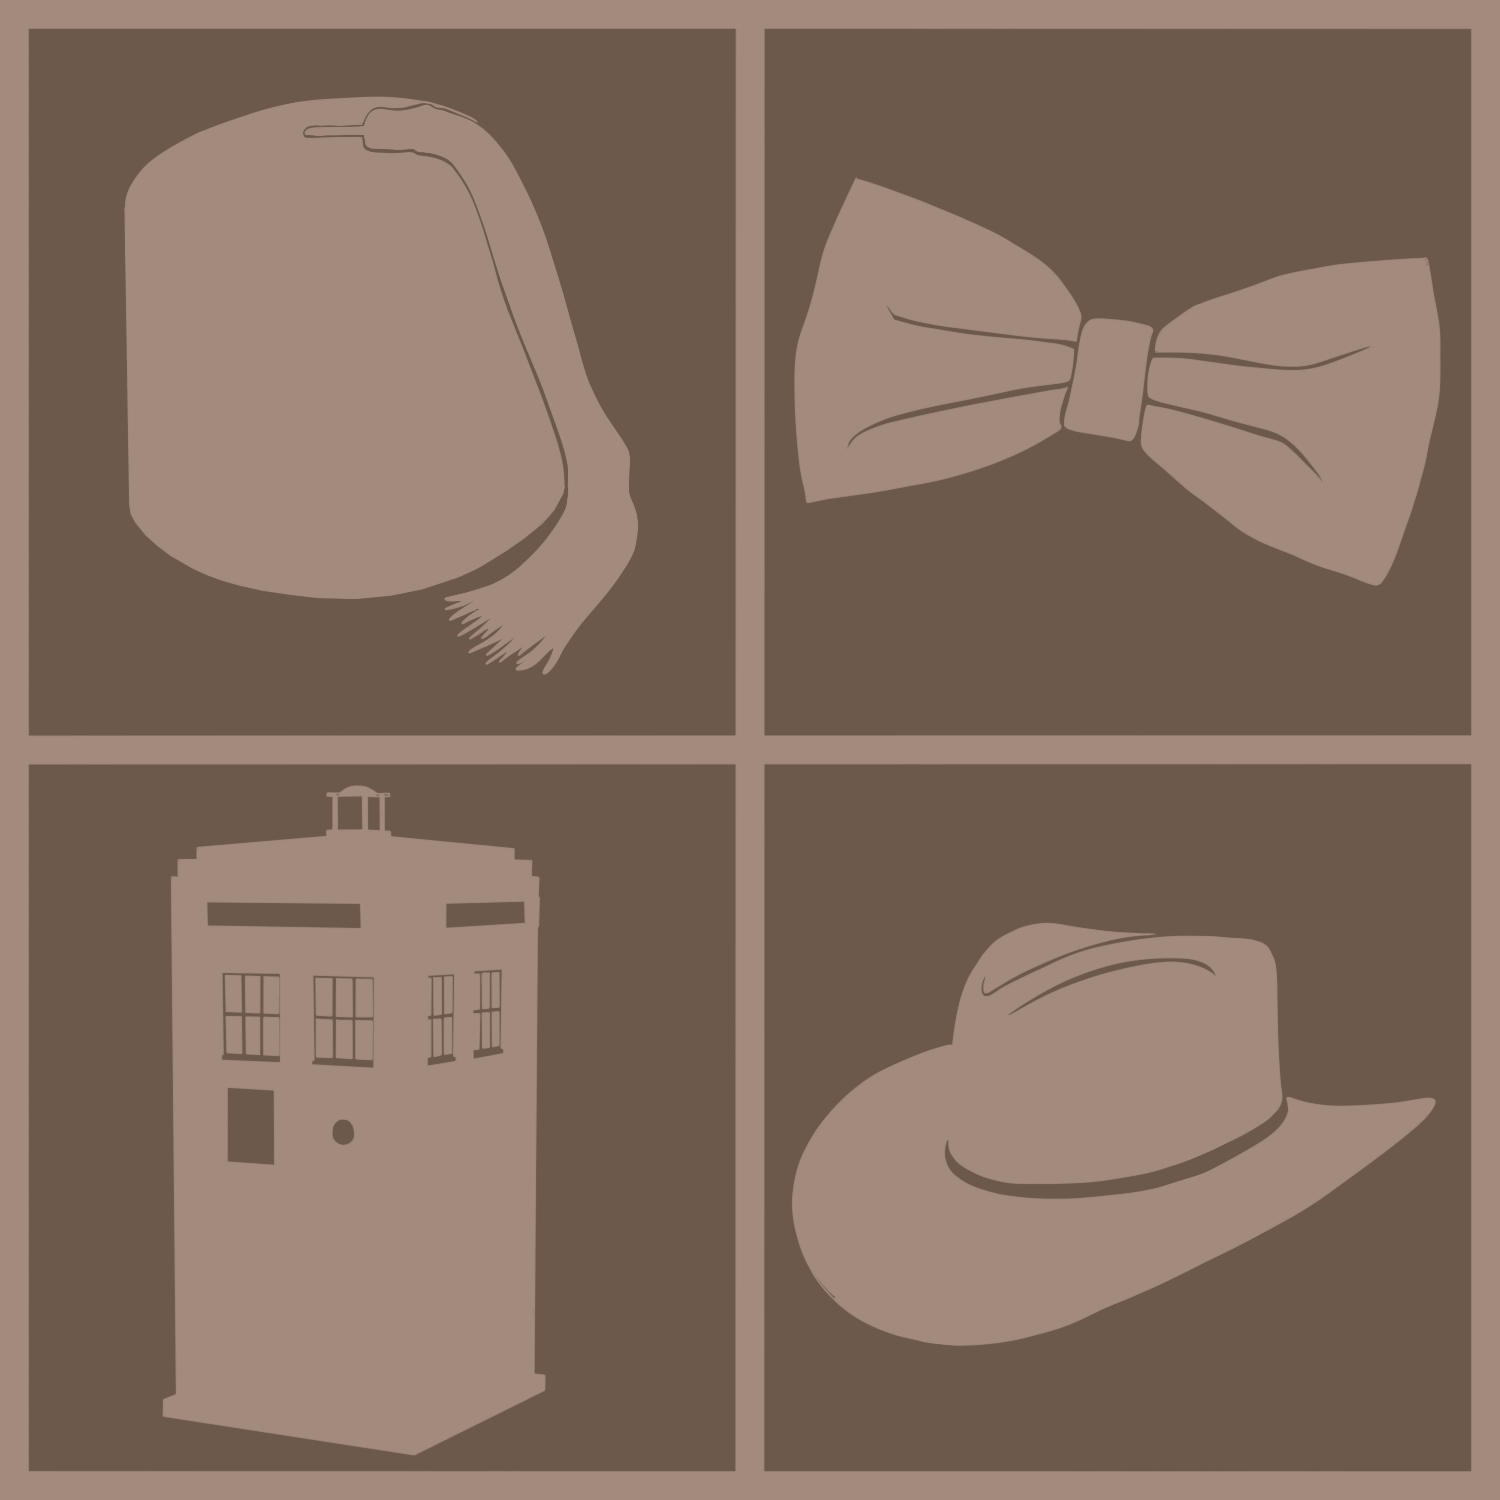 Fedora tardis doctor Who? HD Wallpaper